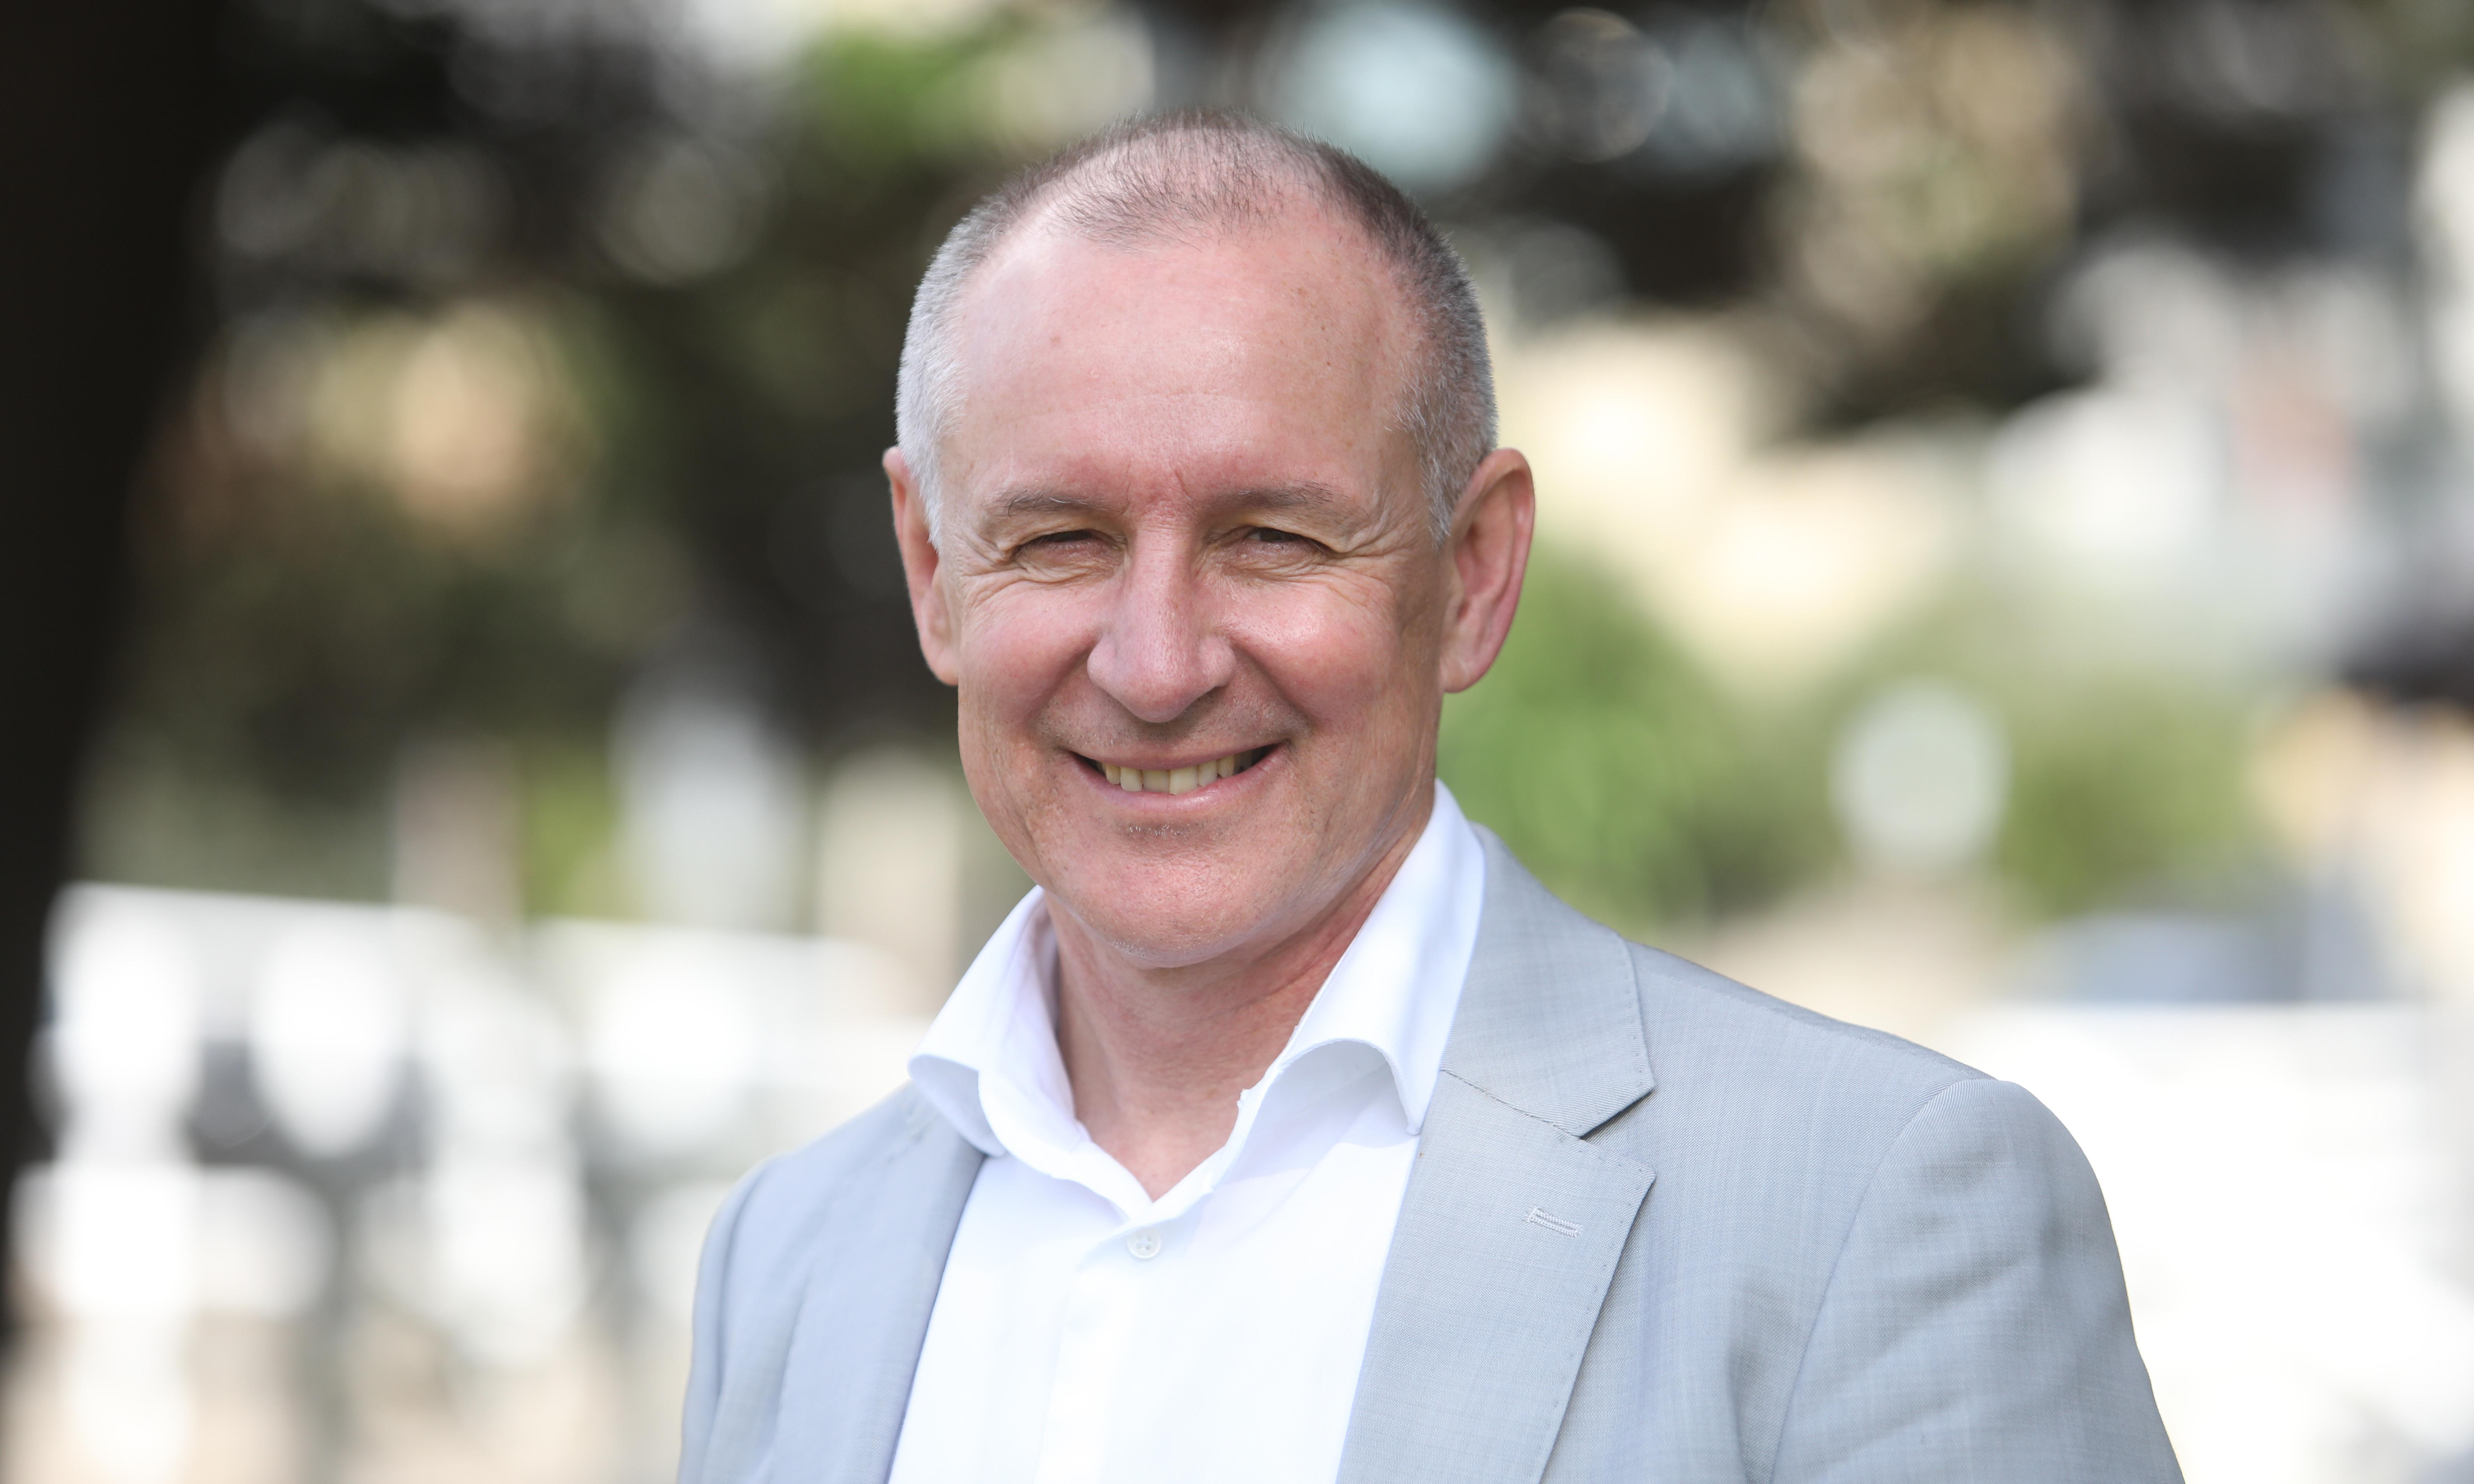 Jay Weatherill asked to conduct 'warts-and-all' review of Labor's election loss